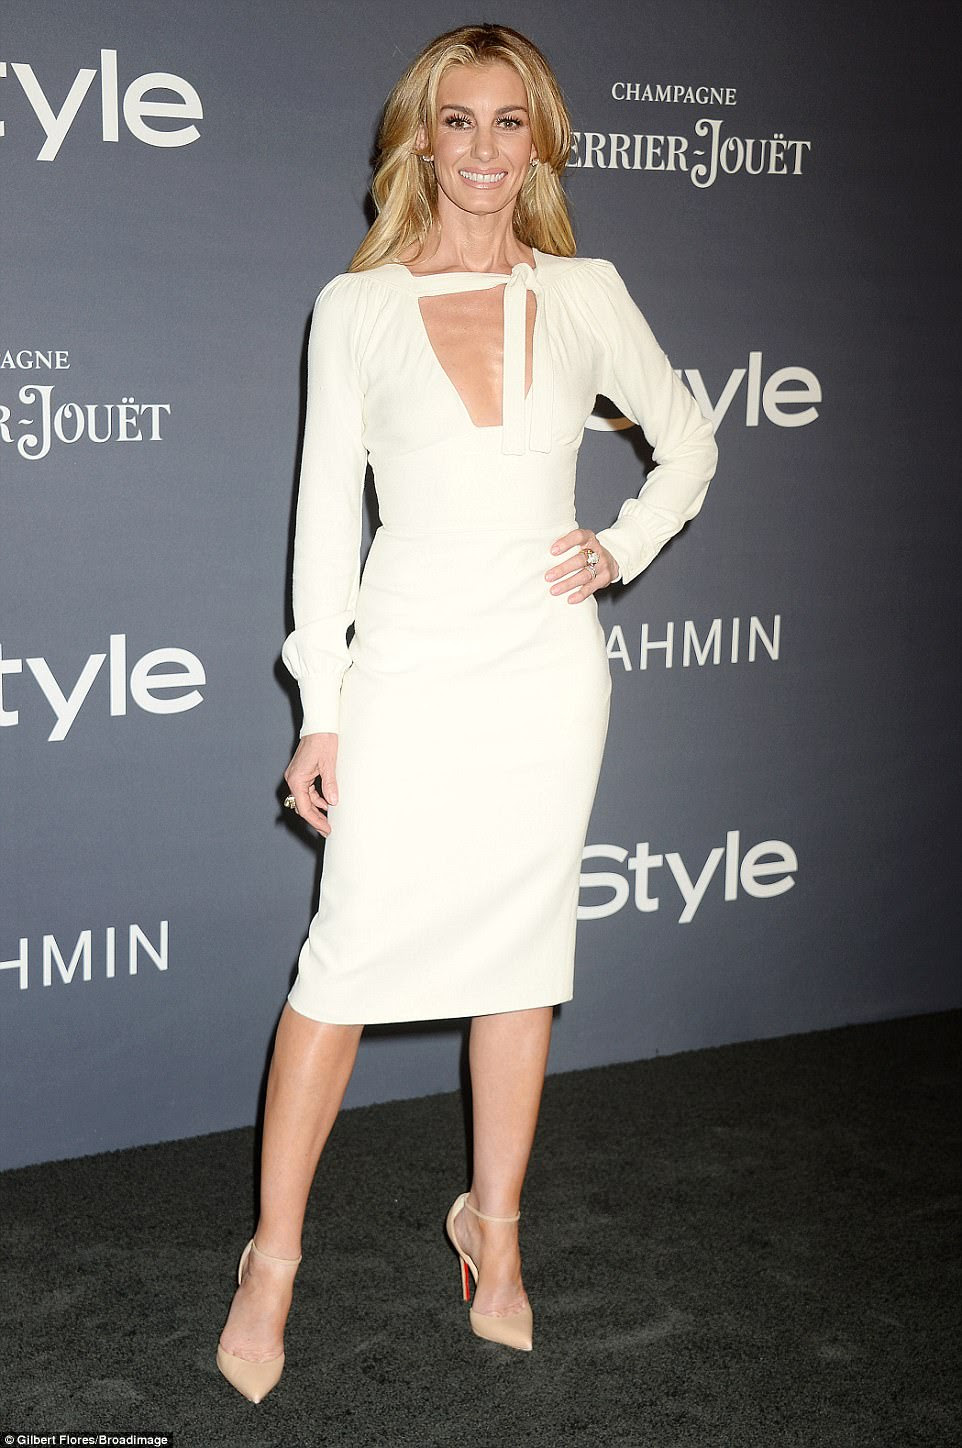 Looking good: Country music star Faith Hill, 50, wore a white long-sleeved dress with a peek-a-boo bodice and nude heels